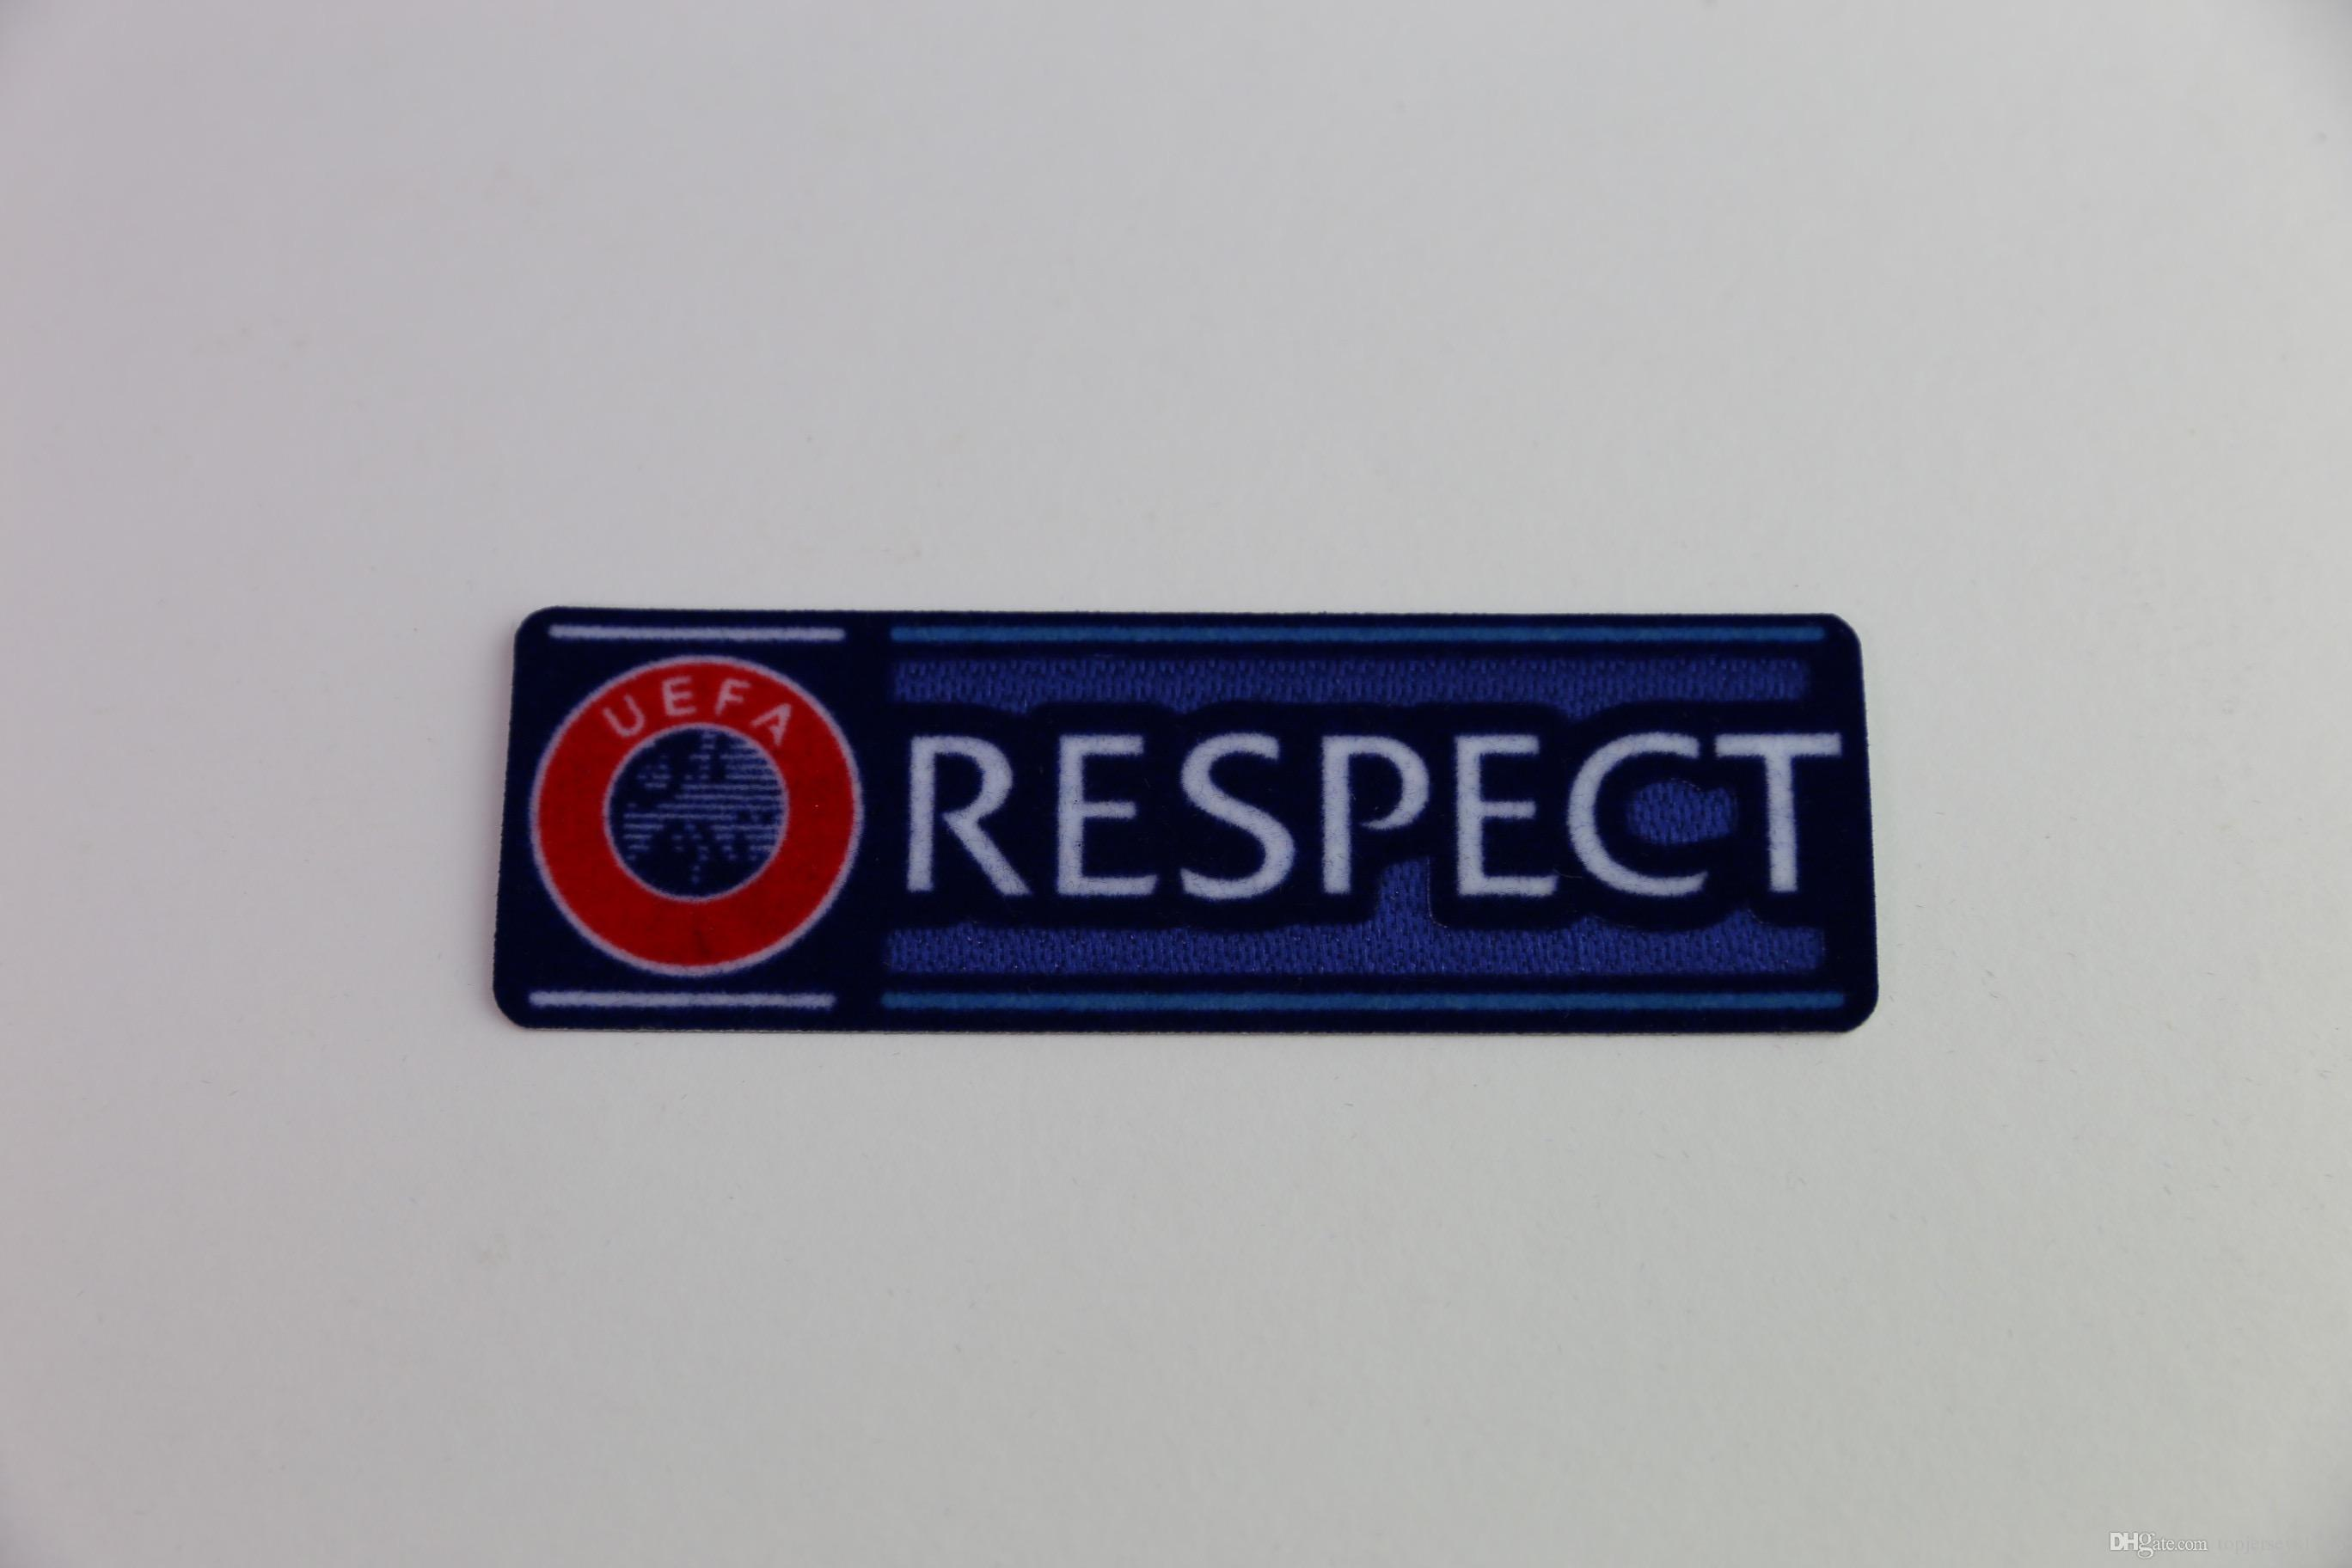 3ed6c8438c a RESPECT Patch 2015-2017 Soccer Badge Cashmere Material Velvet Soccer  Patch Epl Patch Soccer Patch Badge Online with  1.15 Piece on  Topjerseys1718 s Store ...